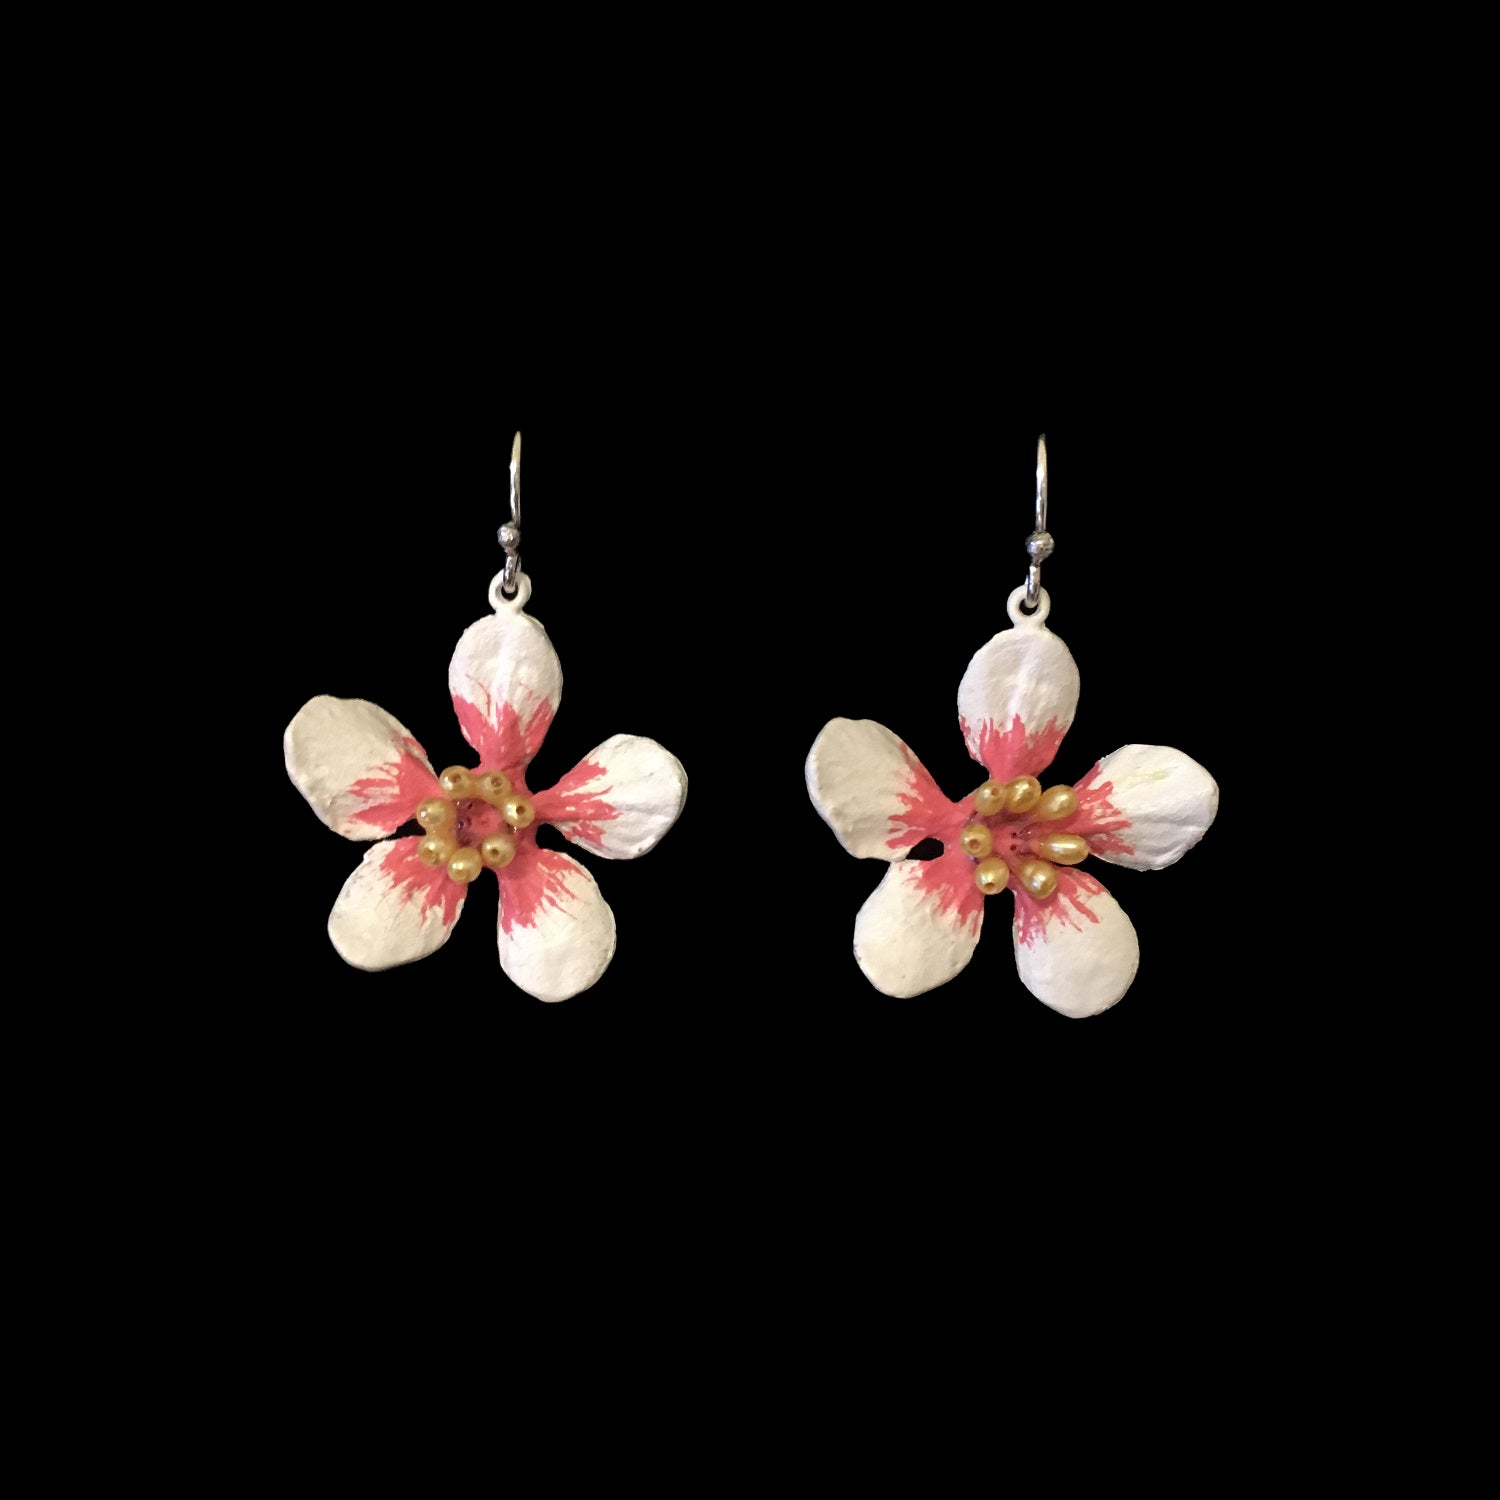 Almond Blossom Earrings - Flower Wire Drop